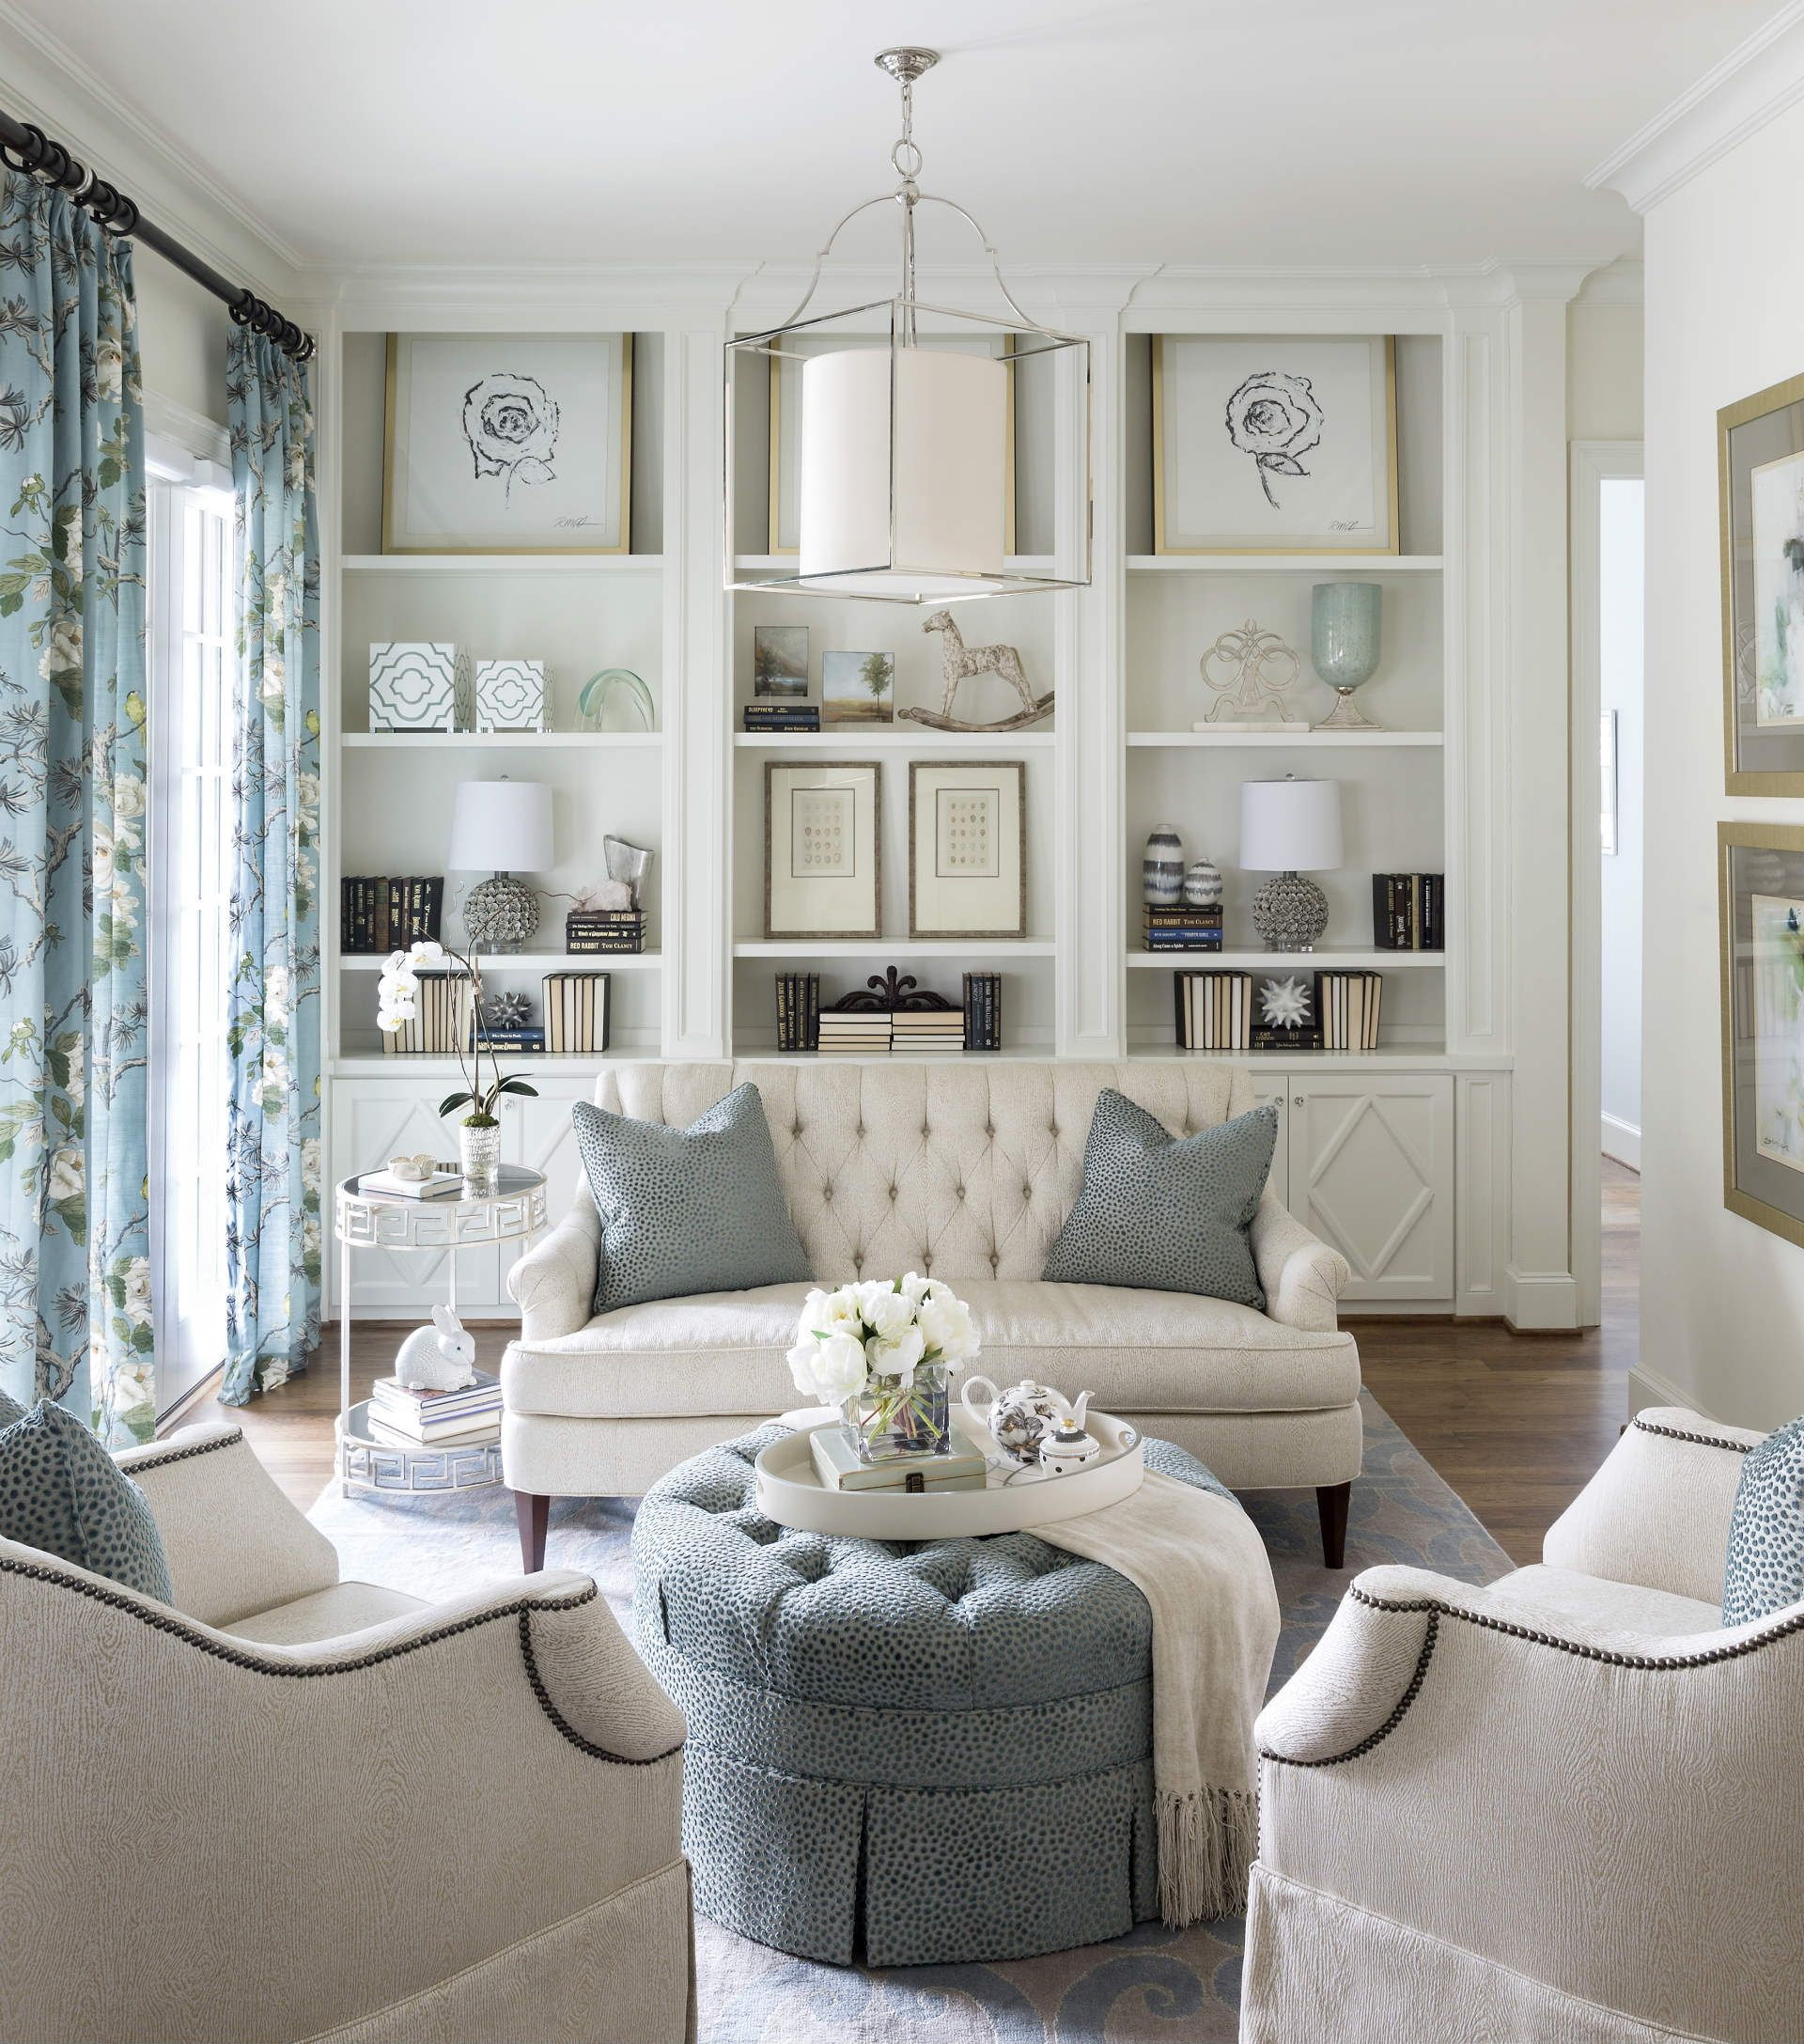 Inspirations For Transitional Living Room: Southern Home Magazine